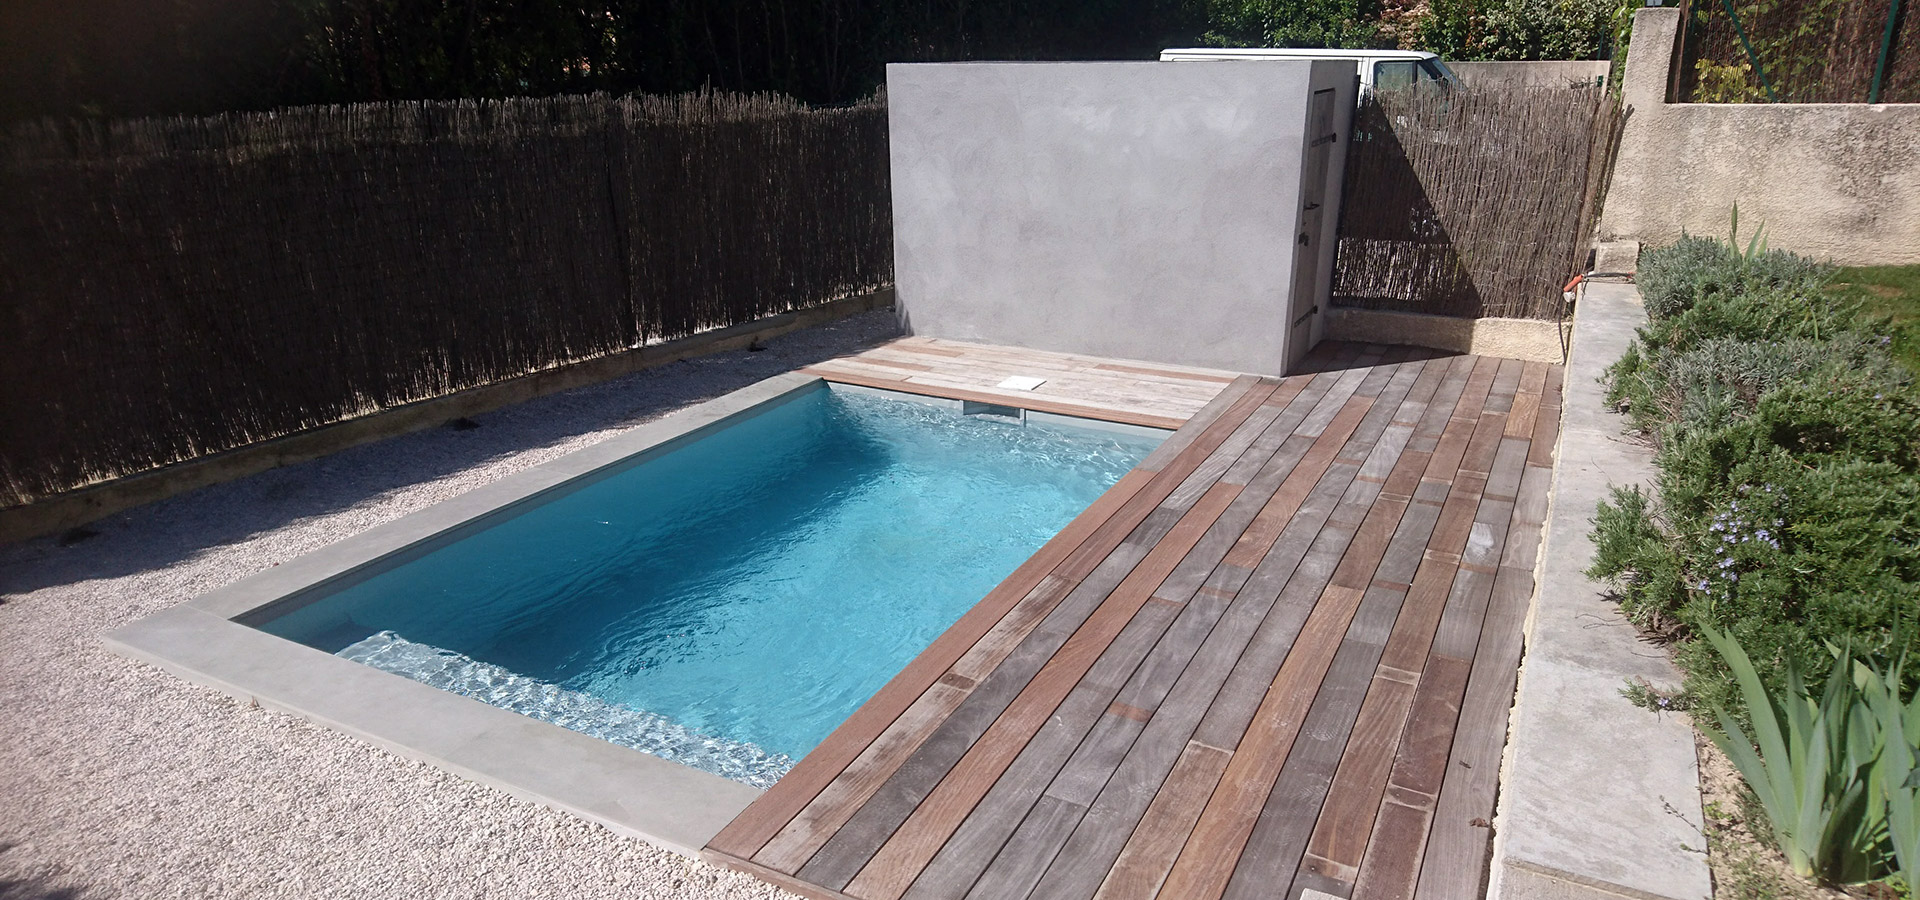 Construction piscine et am nagement ext rieur puyricard - Amenagement d une piscine ...